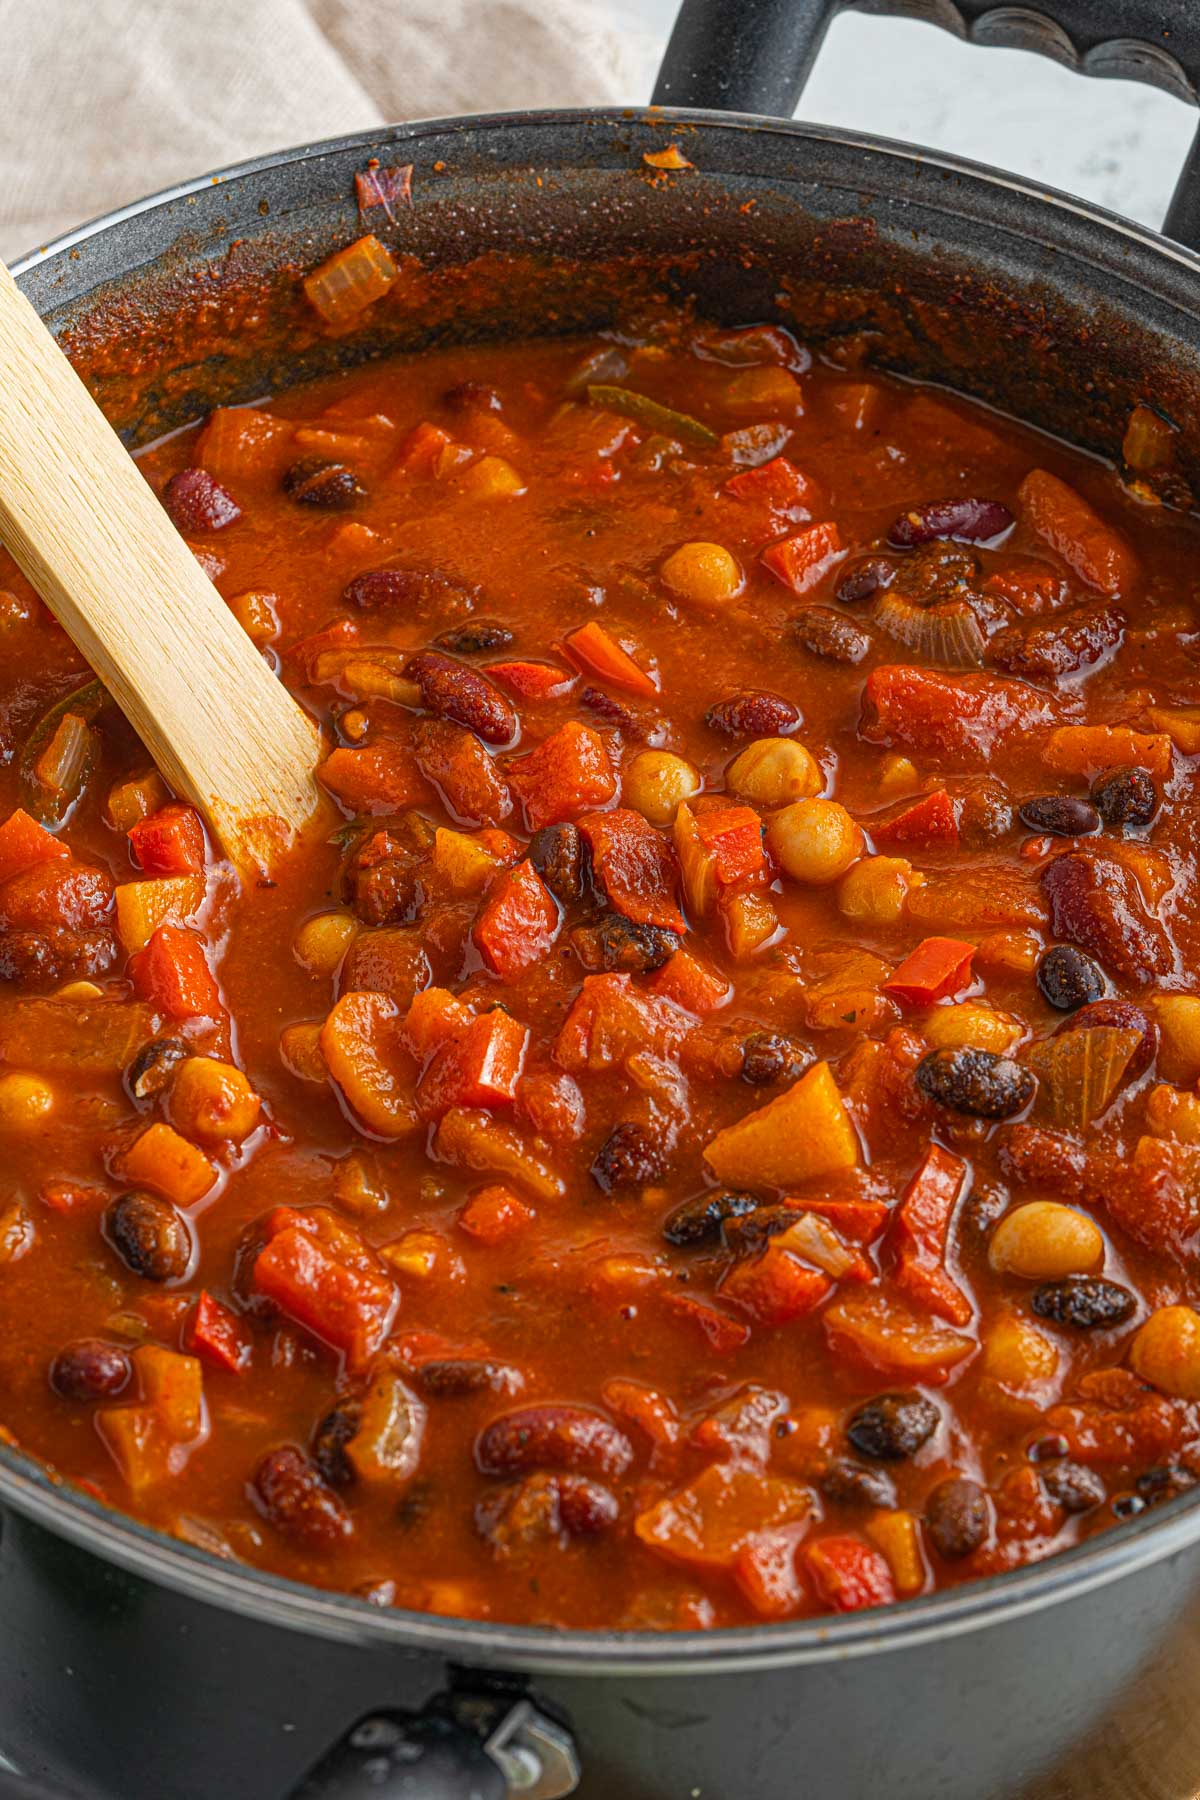 chili in a large pot with several types of beans